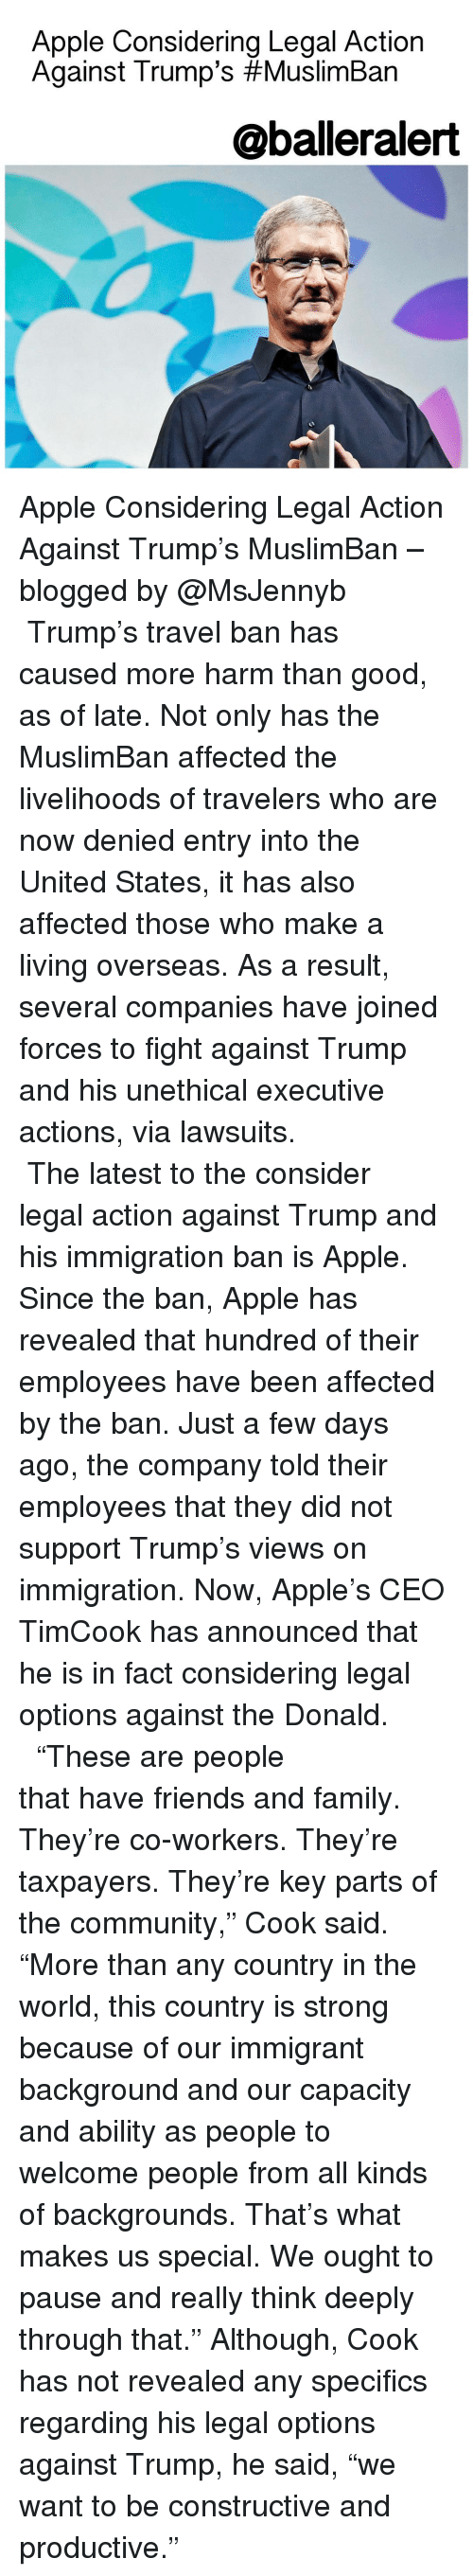 "pause: Apple Considering Legal Action  Against Trump's #Muslim Ban  @balleralert Apple Considering Legal Action Against Trump's MuslimBan – blogged by @MsJennyb ⠀⠀⠀⠀⠀⠀⠀⠀⠀ ⠀⠀⠀⠀⠀⠀⠀⠀⠀ Trump's travel ban has caused more harm than good, as of late. Not only has the MuslimBan affected the livelihoods of travelers who are now denied entry into the United States, it has also affected those who make a living overseas. As a result, several companies have joined forces to fight against Trump and his unethical executive actions, via lawsuits. ⠀⠀⠀⠀⠀⠀⠀⠀⠀ ⠀⠀⠀⠀⠀⠀⠀⠀⠀ The latest to the consider legal action against Trump and his immigration ban is Apple. Since the ban, Apple has revealed that hundred of their employees have been affected by the ban. Just a few days ago, the company told their employees that they did not support Trump's views on immigration. Now, Apple's CEO TimCook has announced that he is in fact considering legal options against the Donald. ⠀⠀⠀⠀⠀⠀⠀⠀⠀ ⠀⠀⠀⠀⠀⠀⠀⠀⠀ ""These are people that have friends and family. They're co-workers. They're taxpayers. They're key parts of the community,"" Cook said. ""More than any country in the world, this country is strong because of our immigrant background and our capacity and ability as people to welcome people from all kinds of backgrounds. That's what makes us special. We ought to pause and really think deeply through that."" Although, Cook has not revealed any specifics regarding his legal options against Trump, he said, ""we want to be constructive and productive."""